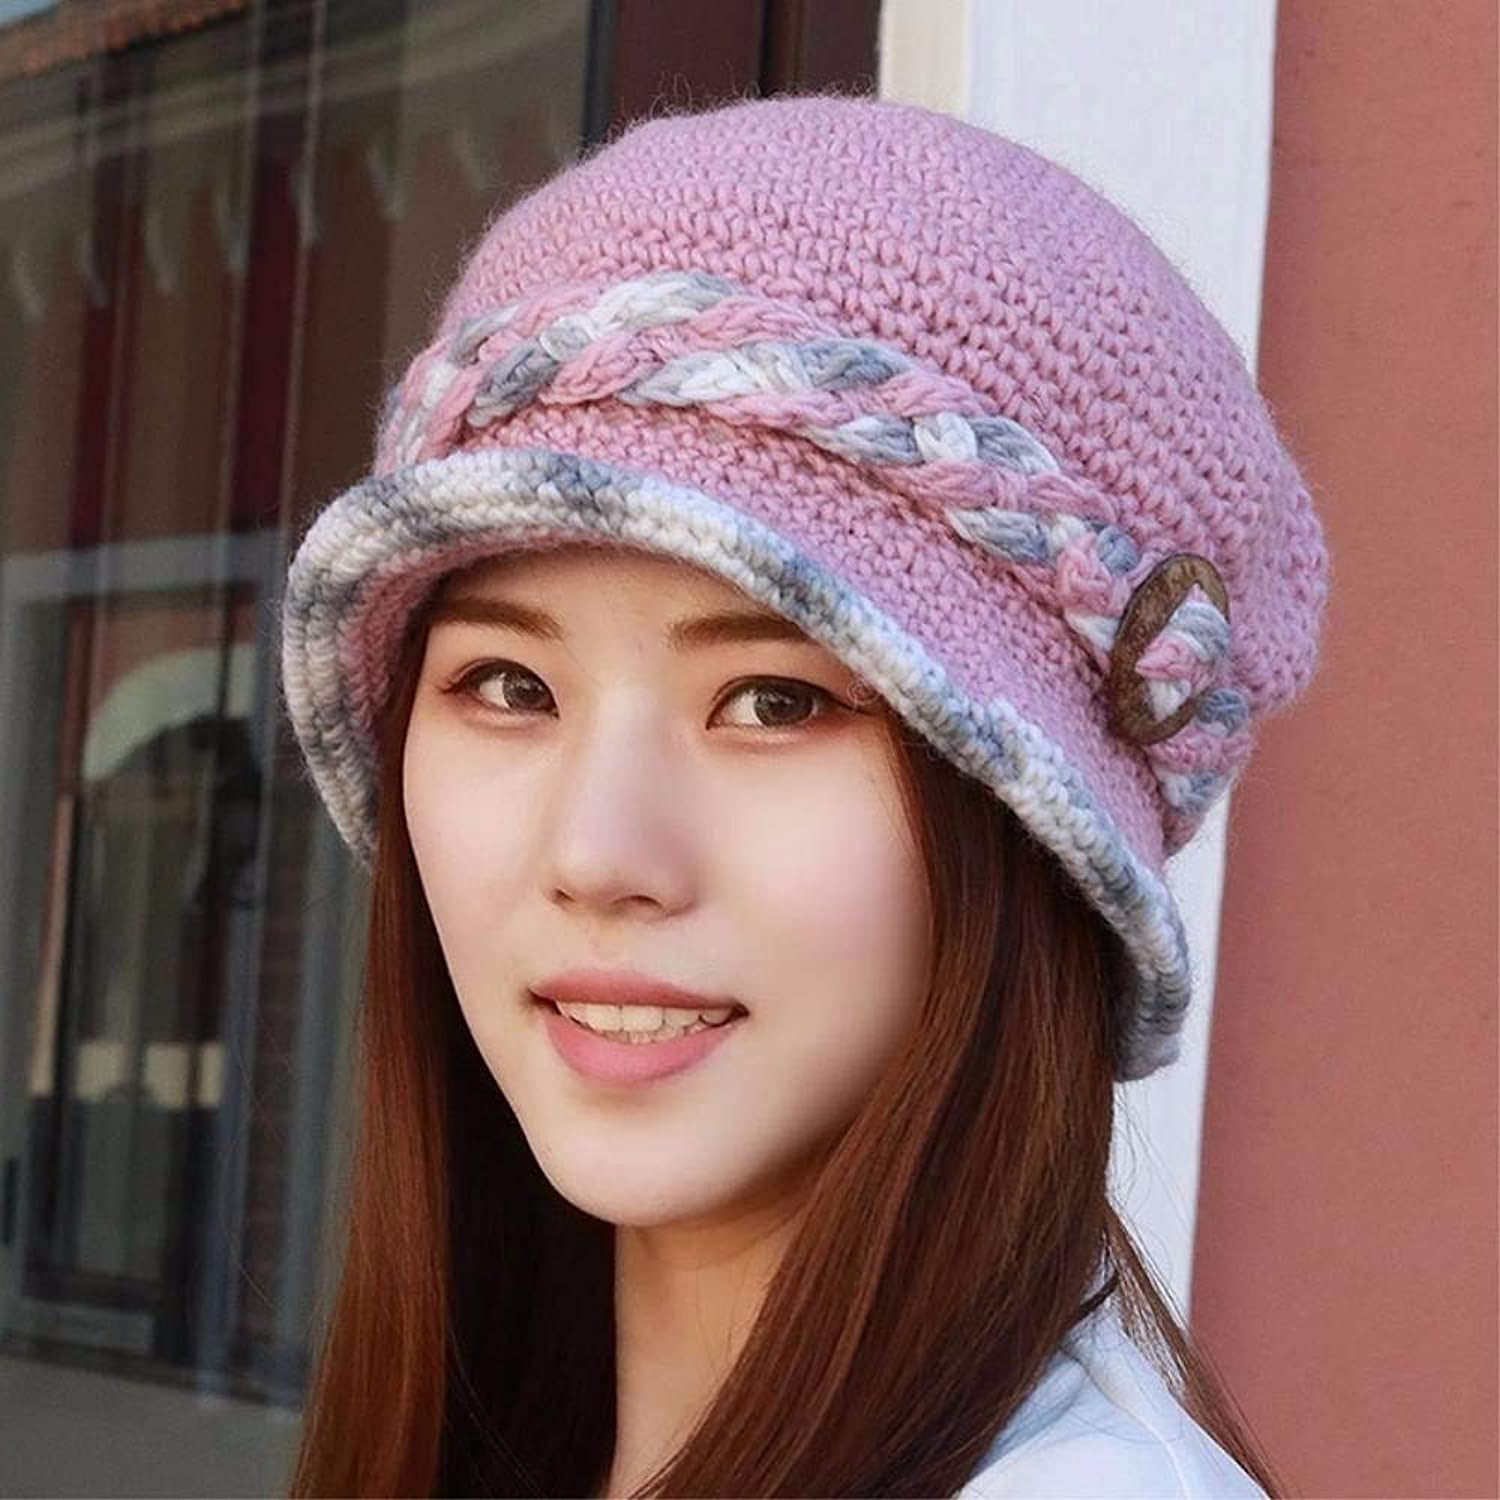 Chuiqingnet All ages thickening plus velvet warm knitting wool cap basin cap fishing cap hat elderly mother.